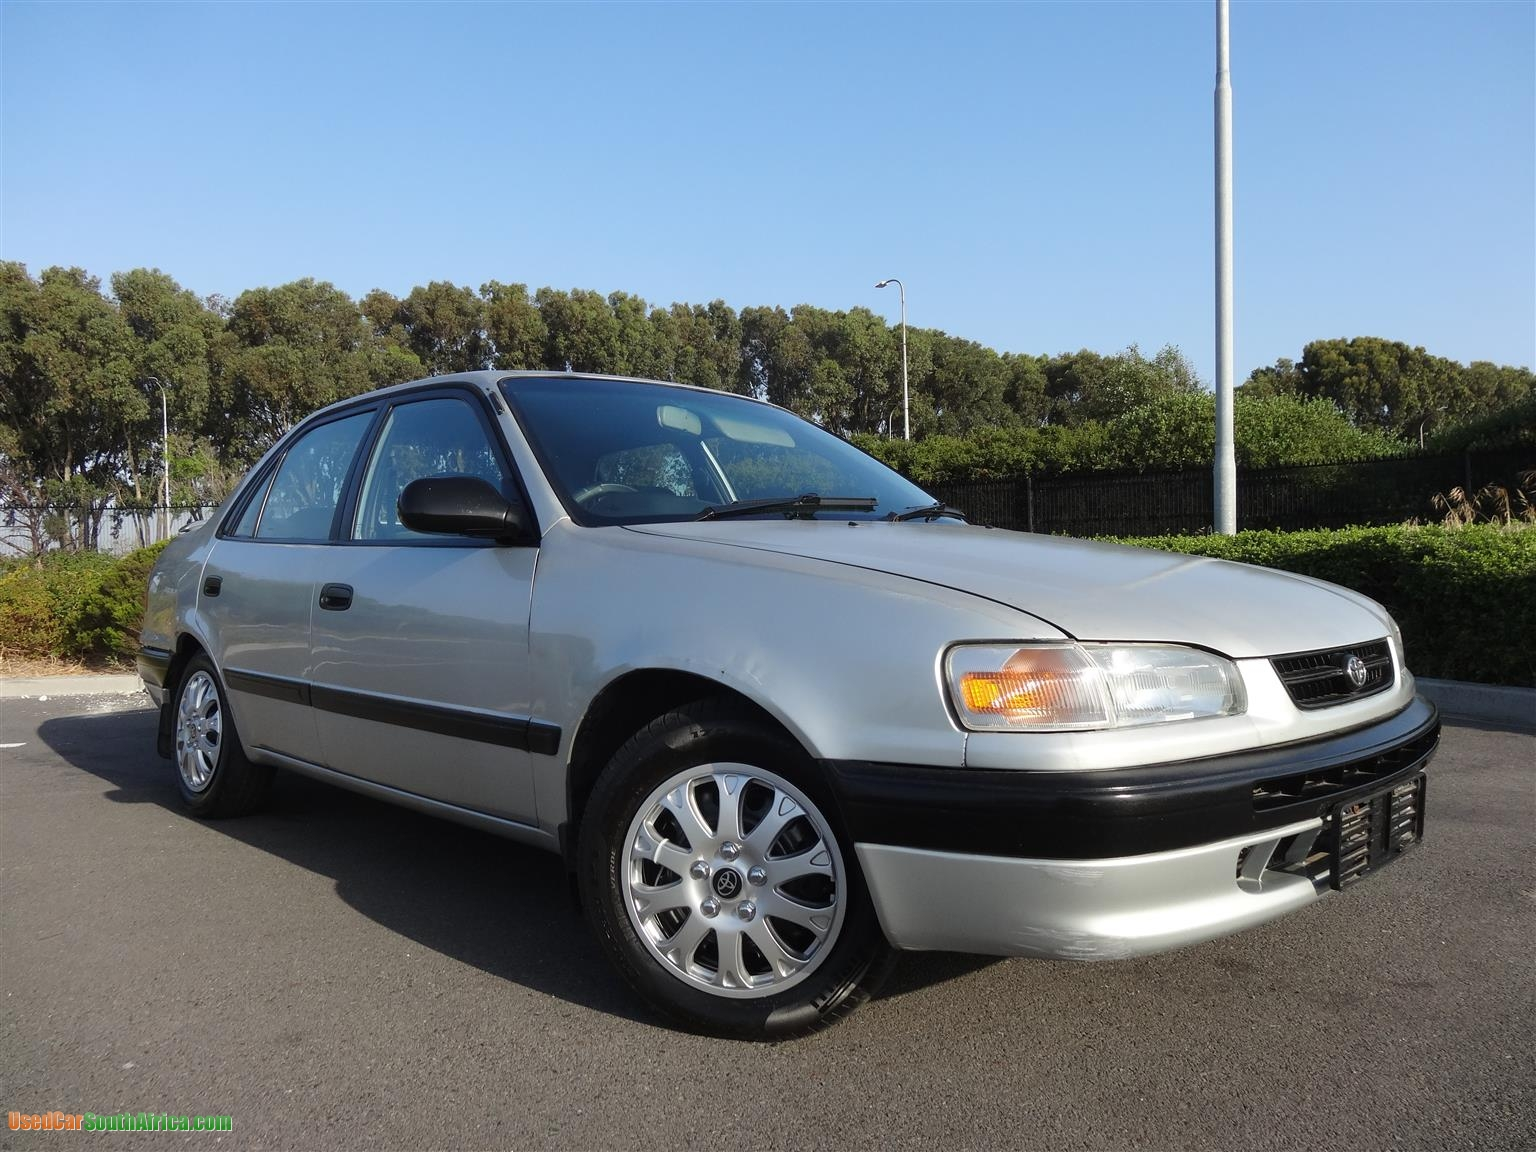 toyota corolla london east 1990 africa south cape eastern usedcarsouthafrica